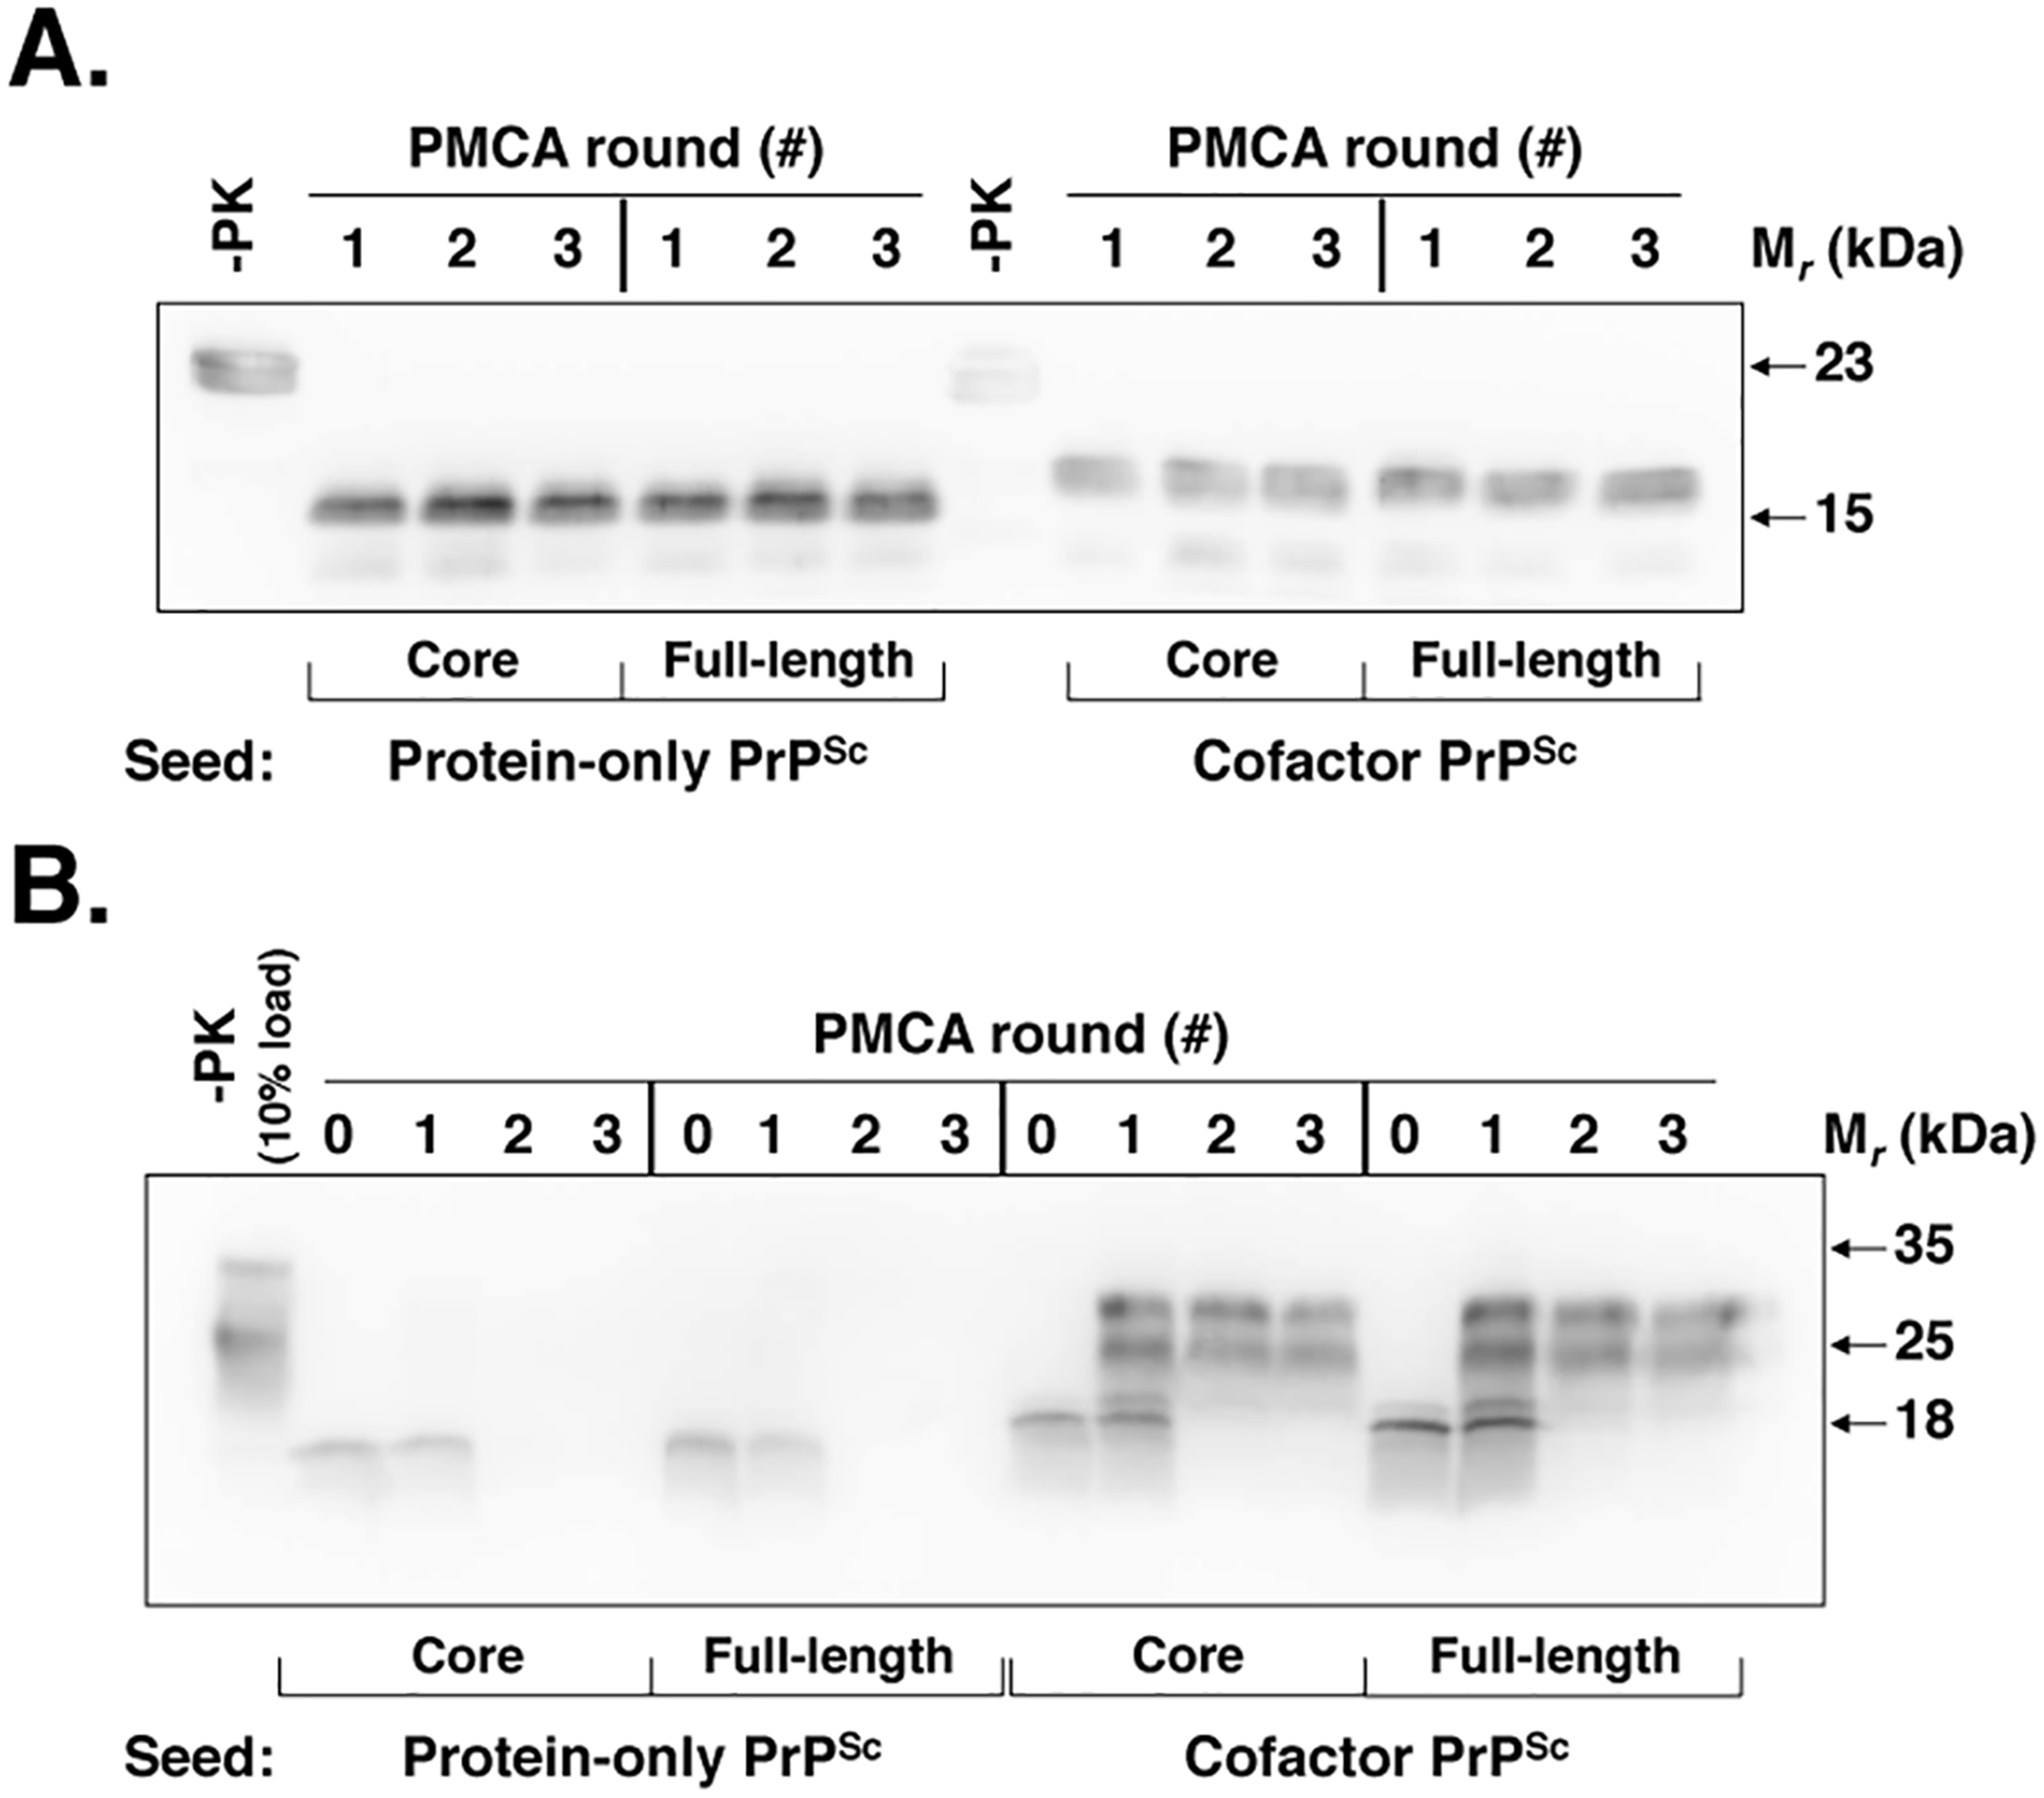 Cofactor and protein-only PrP<sup>Sc</sup> are stably propagating recombinant PrP conformers that differ in their ability to template the conversion of native PrP<sup>C</sup>.